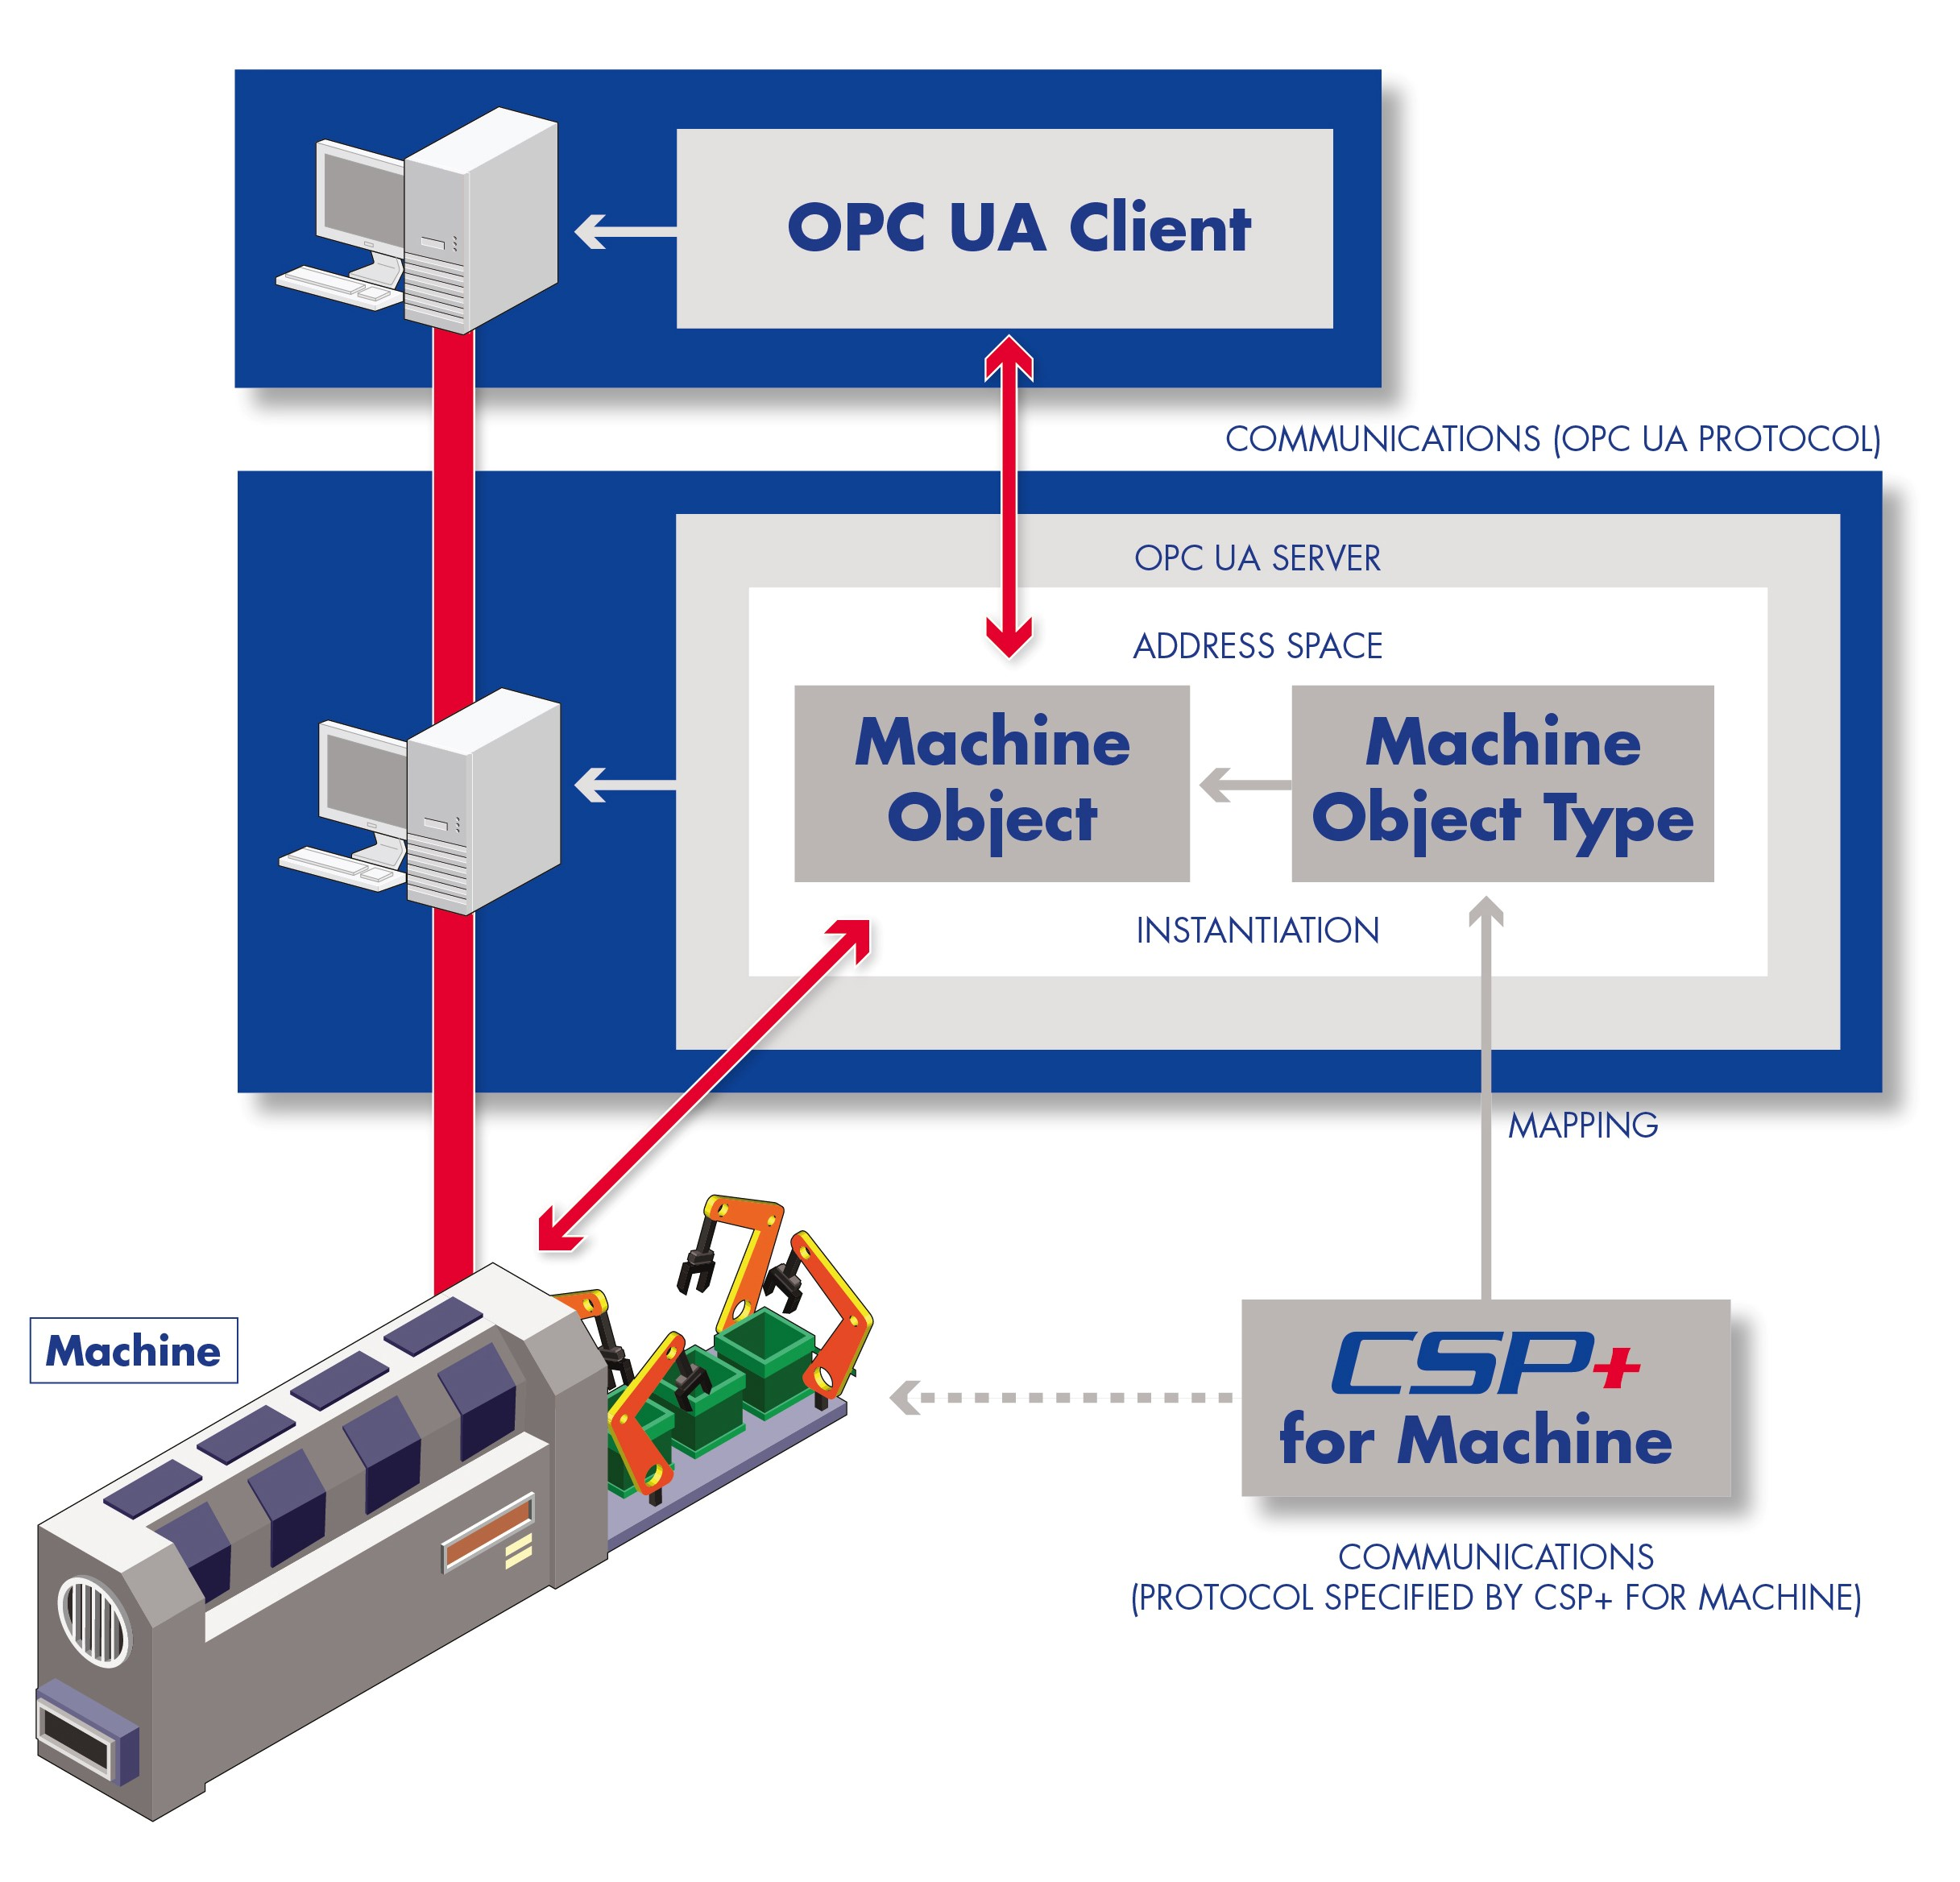 """CLPA announces OPC UA companion specification for new """"CSP+ for Machine"""" technology at SPS/IPC/Drives 2017"""